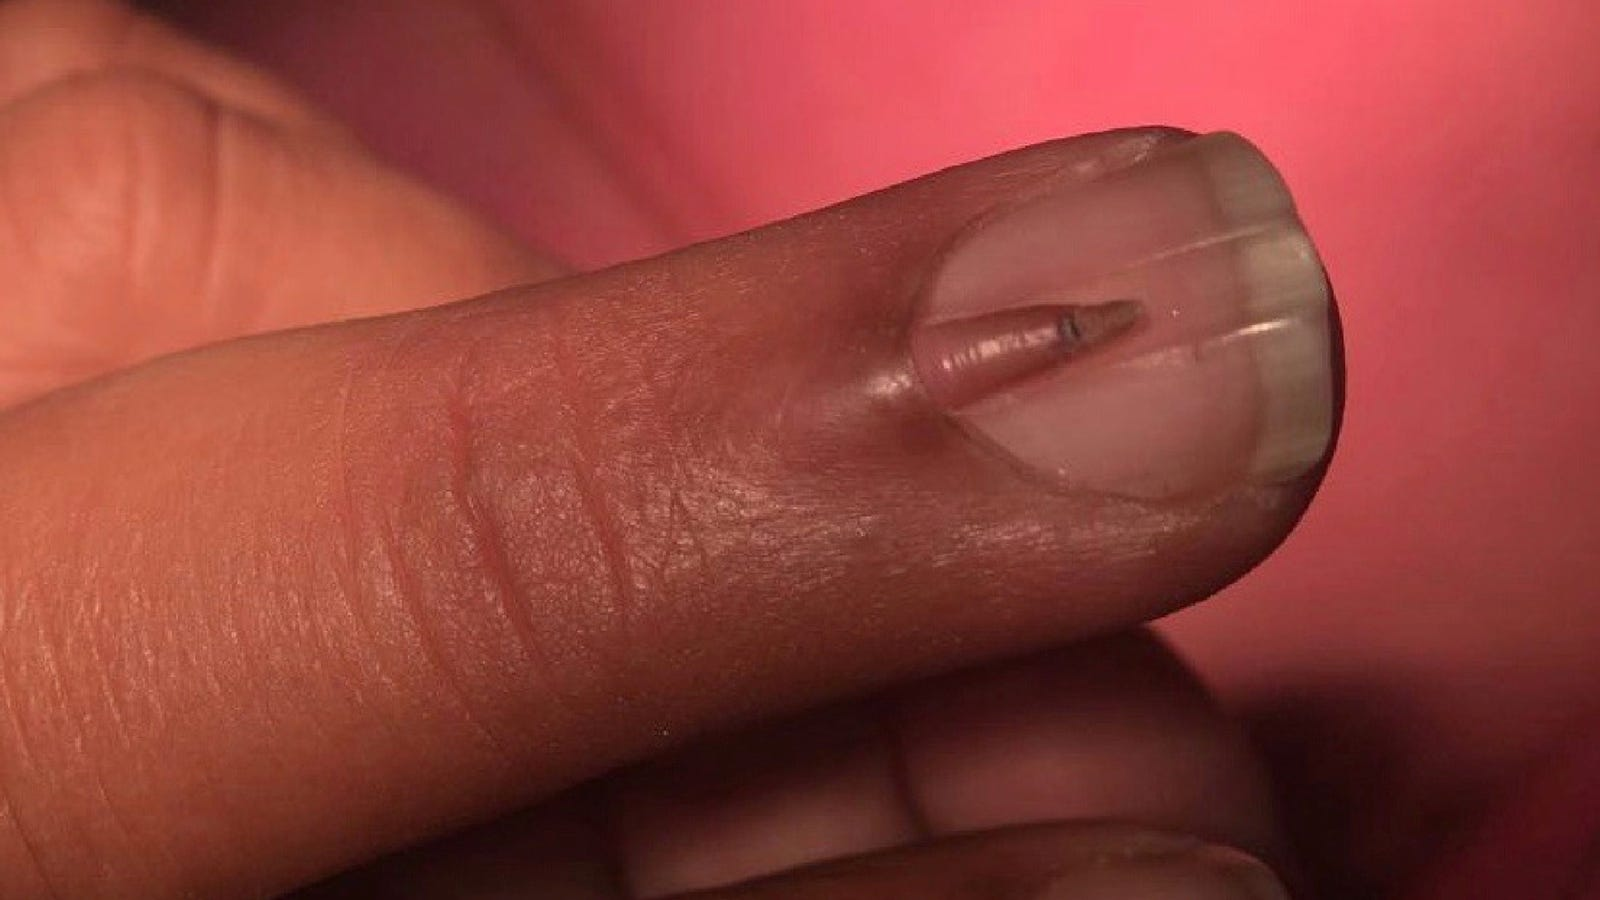 Here Is a Teeny Nail Growing on Top of Another Nail on Someone\'s ...